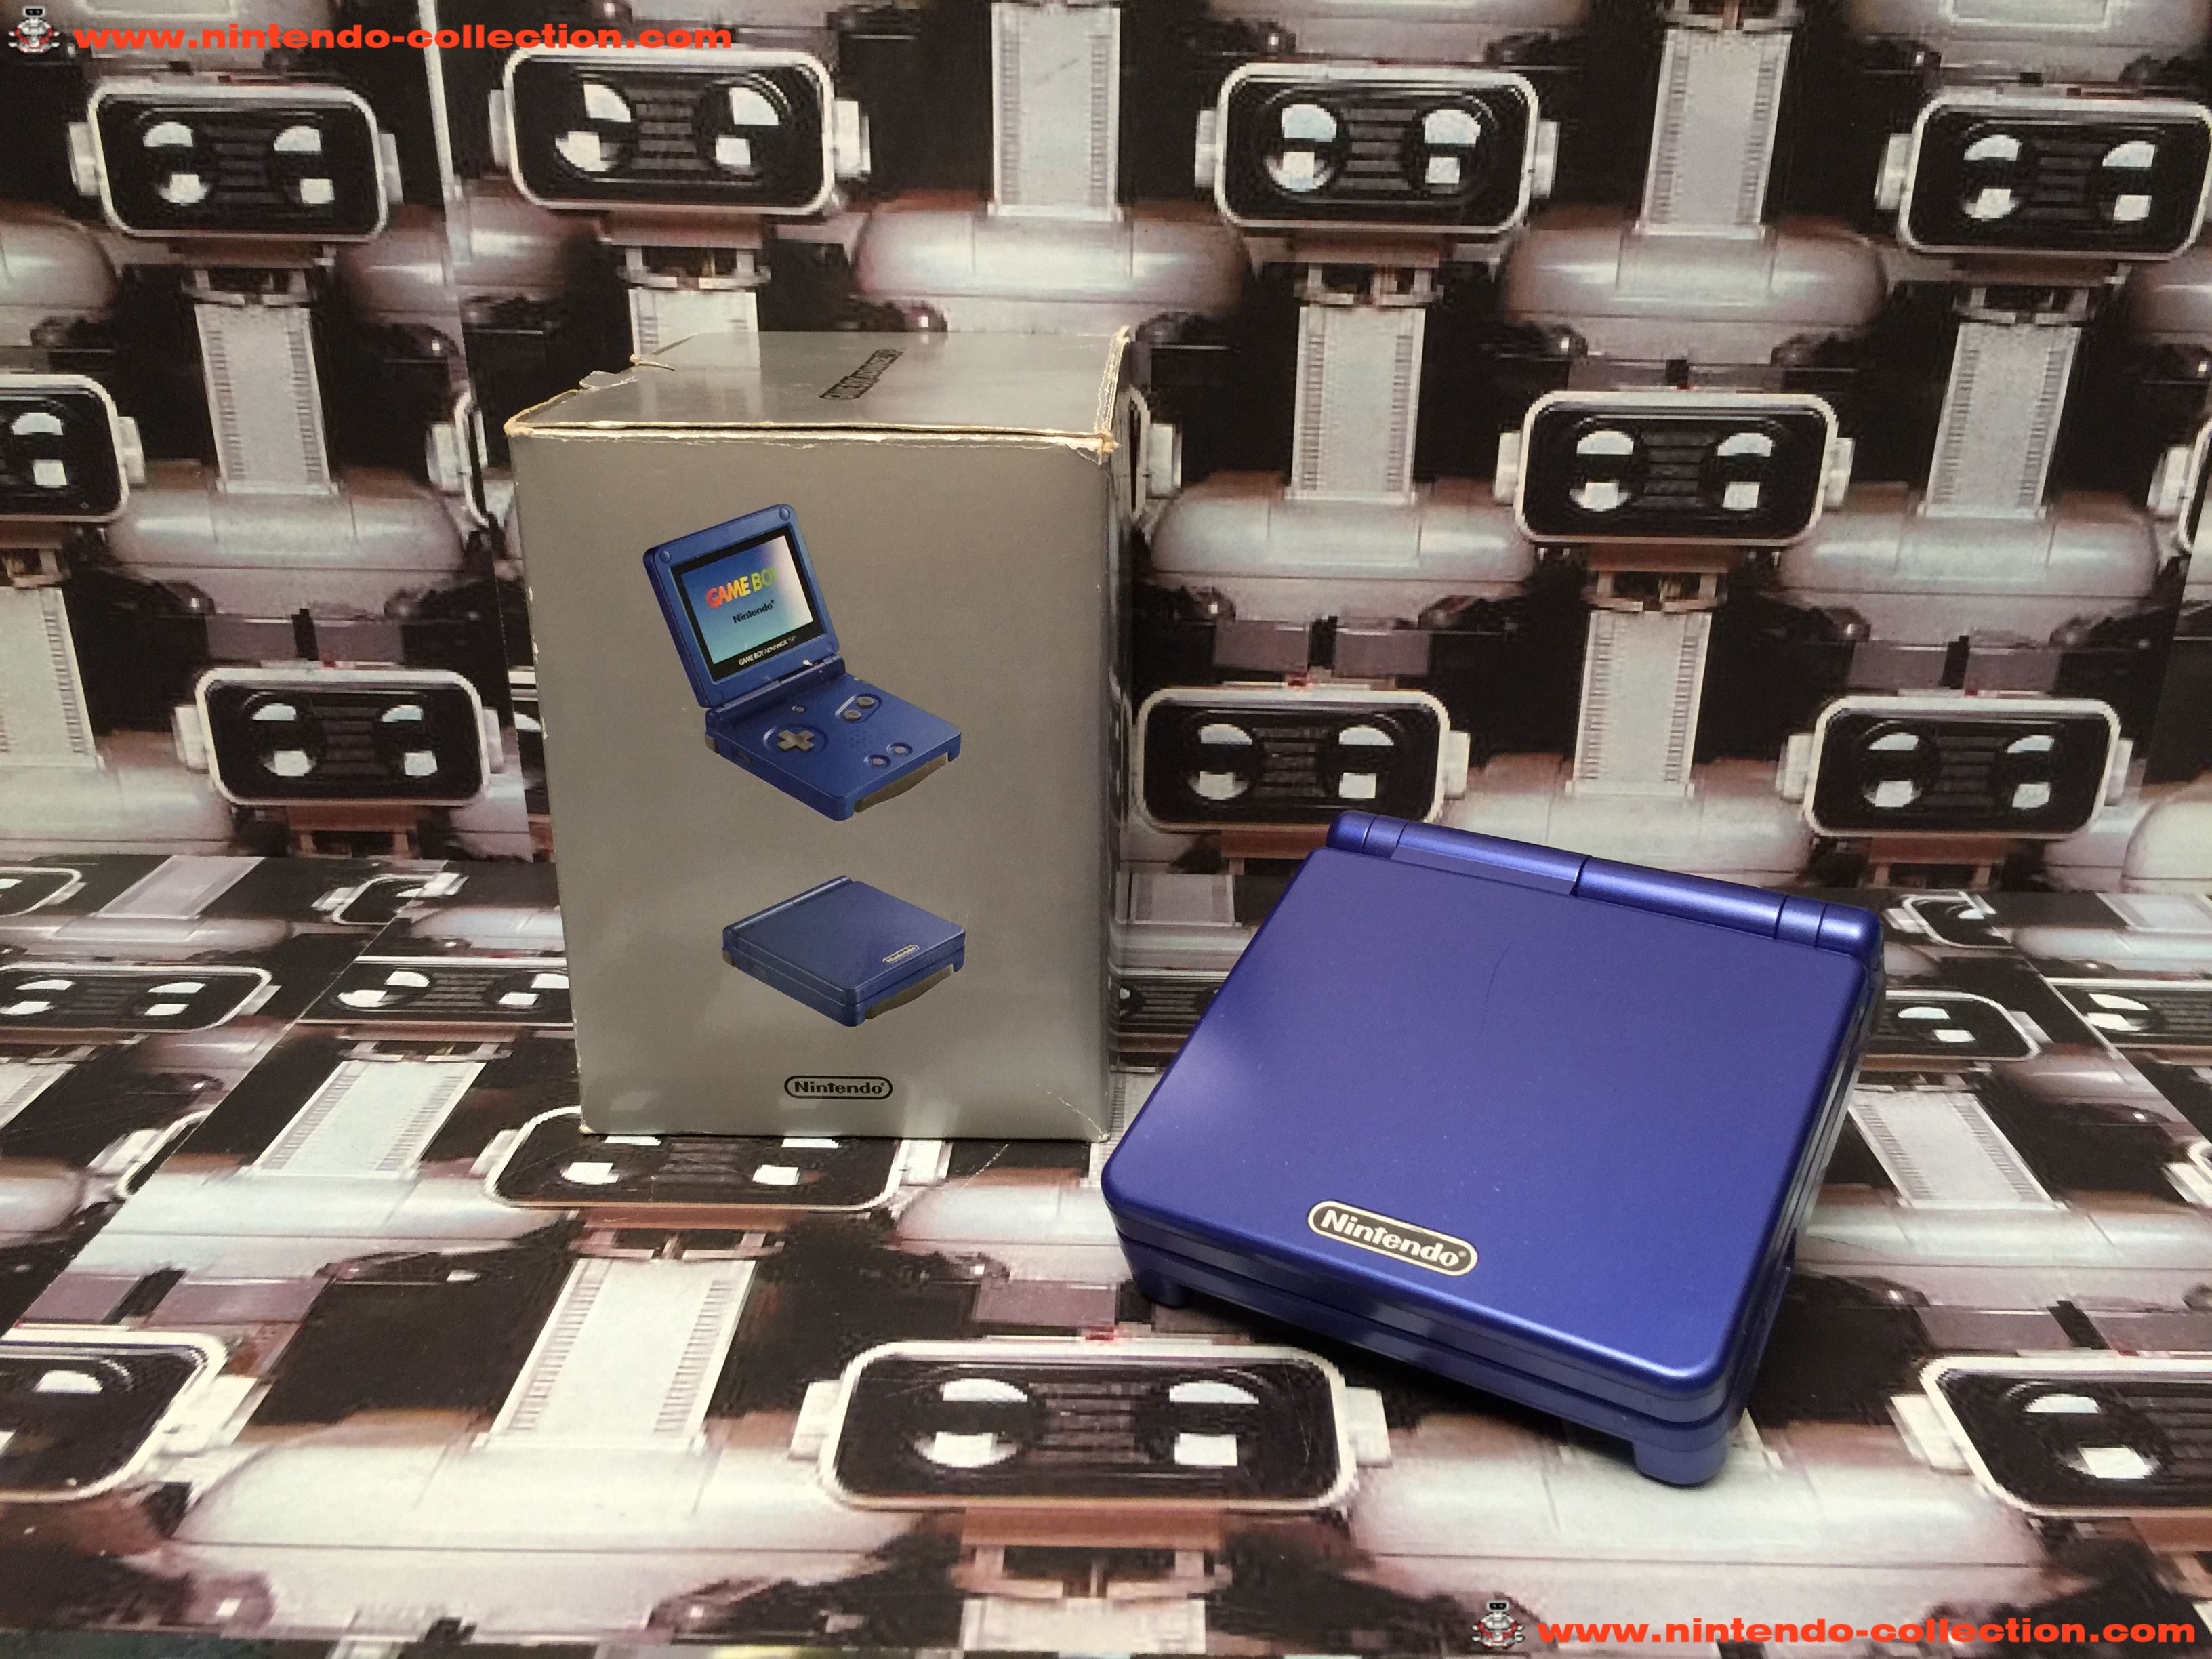 www.nintendo-collection.com - Gameboy Advance GBA SP Blue Bleu Edition europeenne european - 02